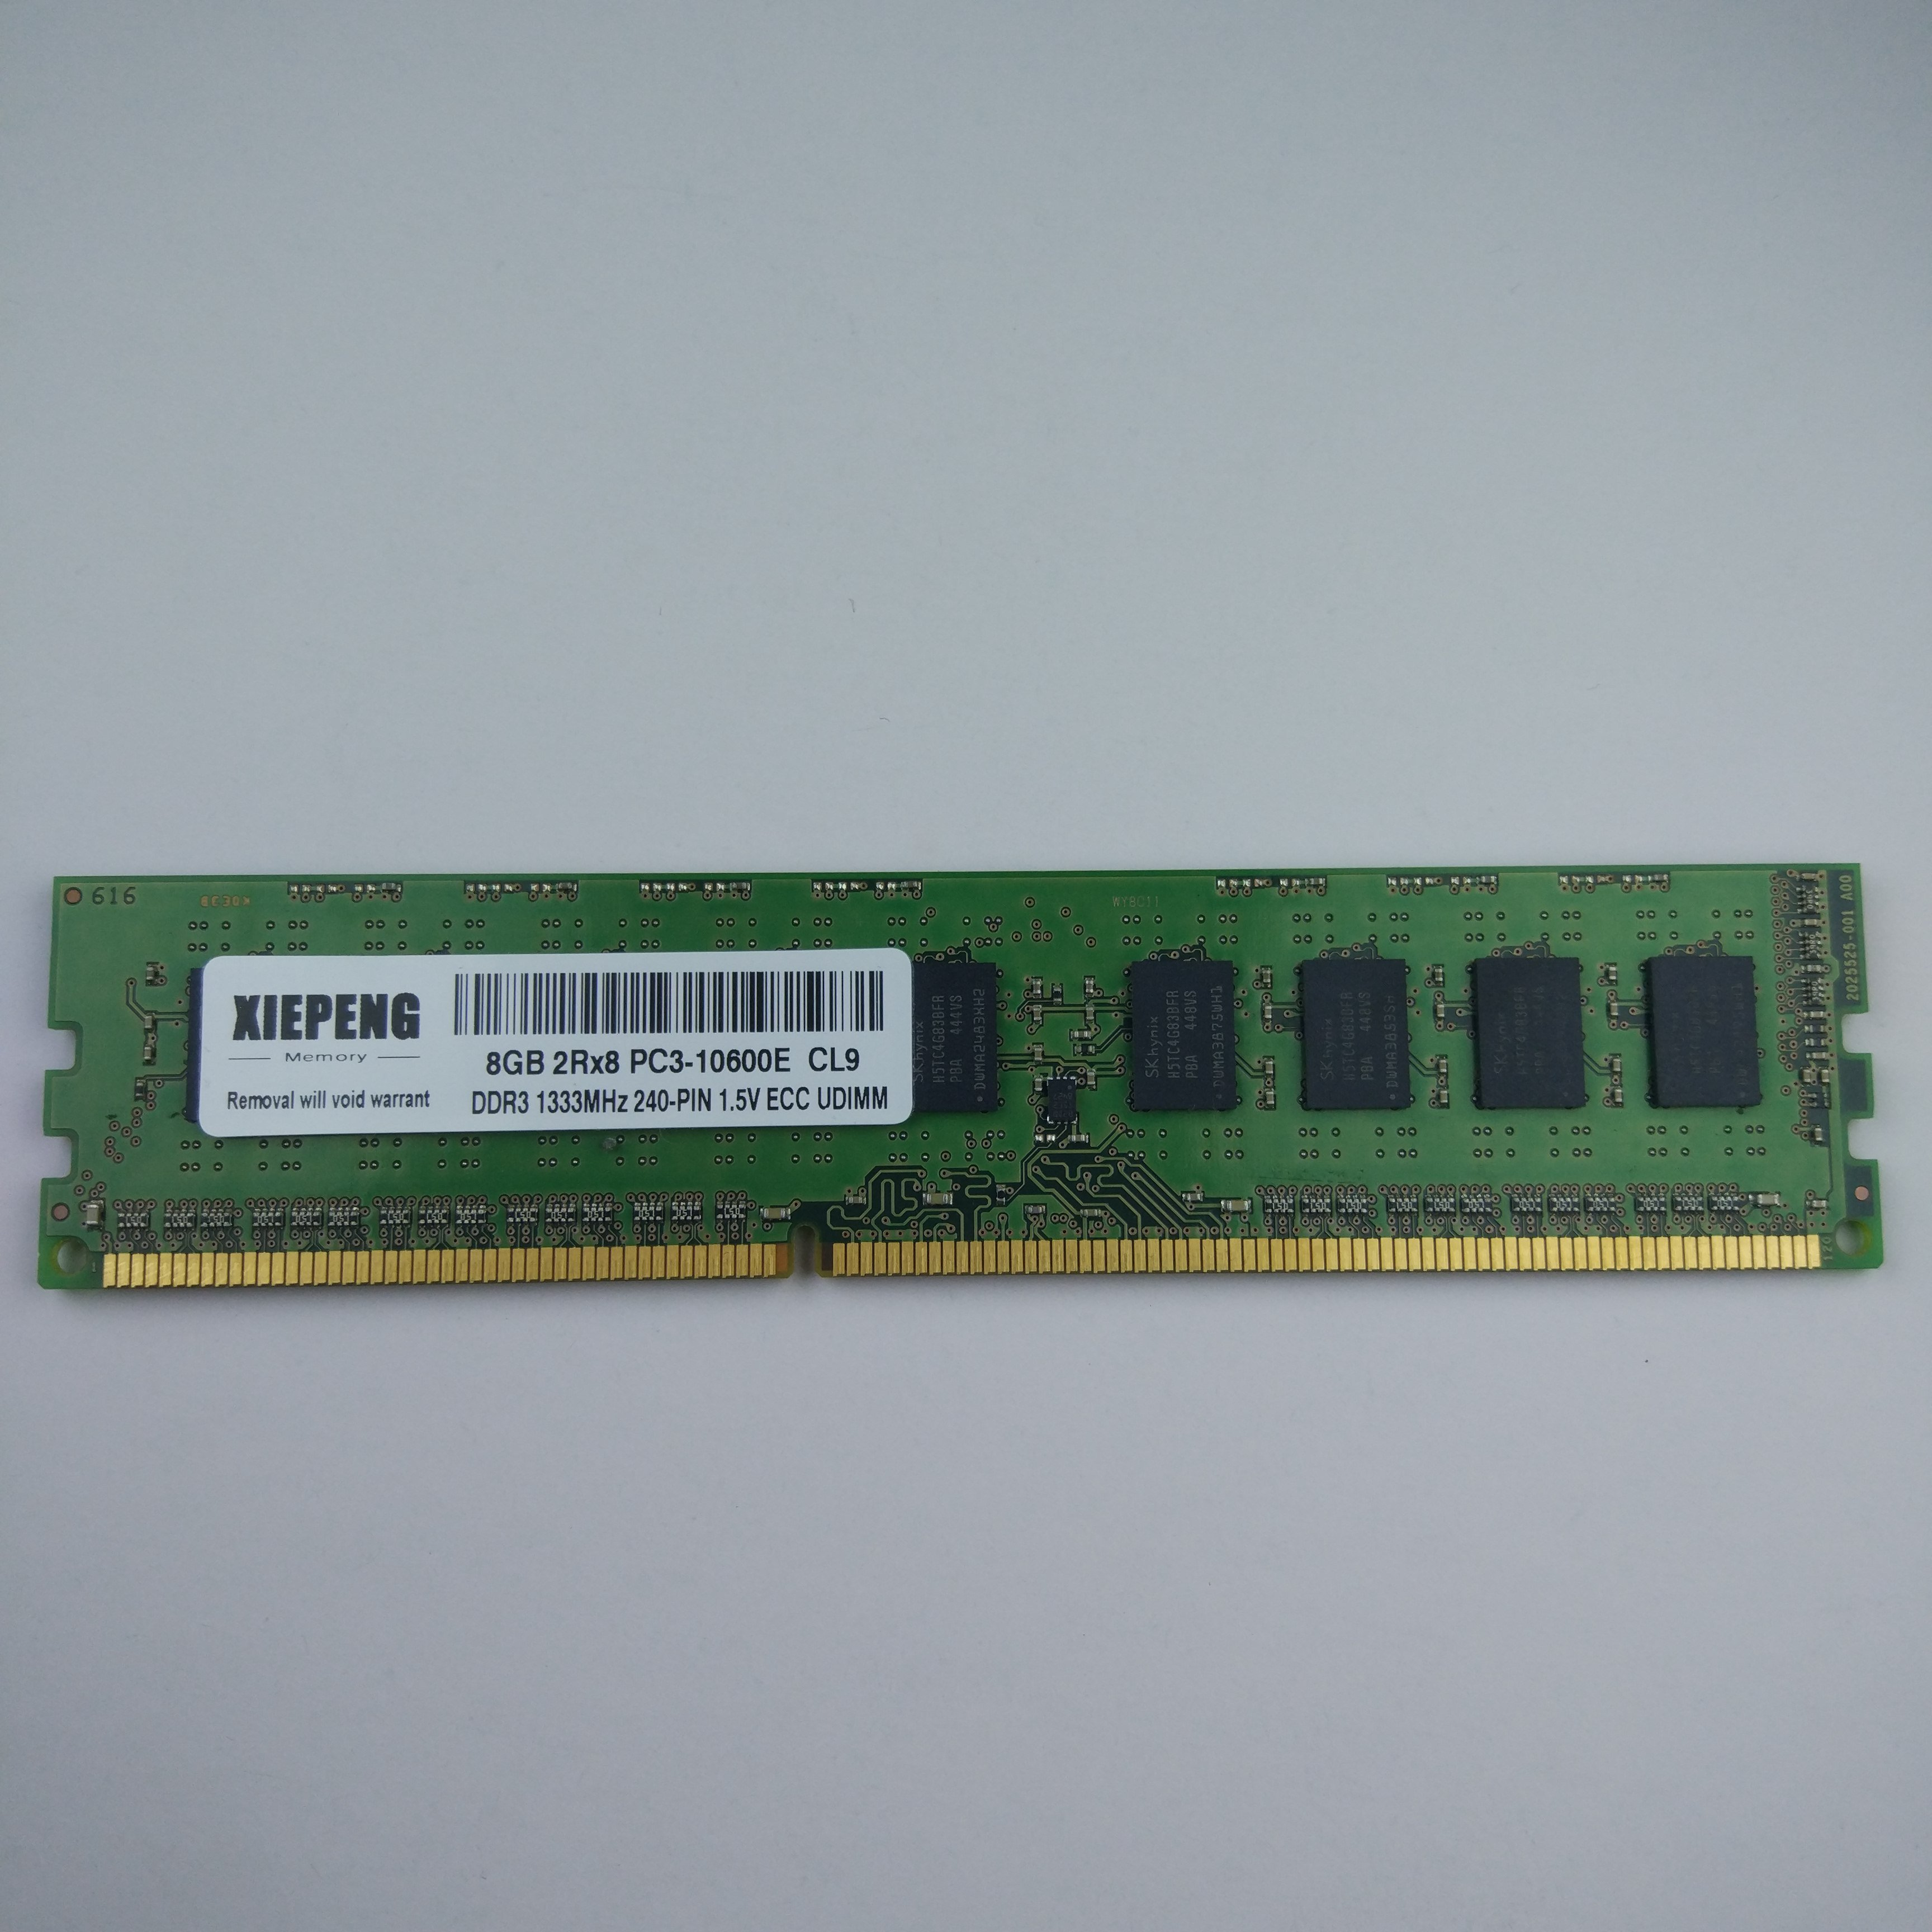 Server 8GB DDR3 1333MHz <font><b>RAM</b></font> 16GB 2Rx8 PC3-10600 <font><b>4GB</b></font> ECC for <font><b>HP</b></font> ProLiant SL270s SL250s SL230s ML350e Gen8 Registered ECC memory image